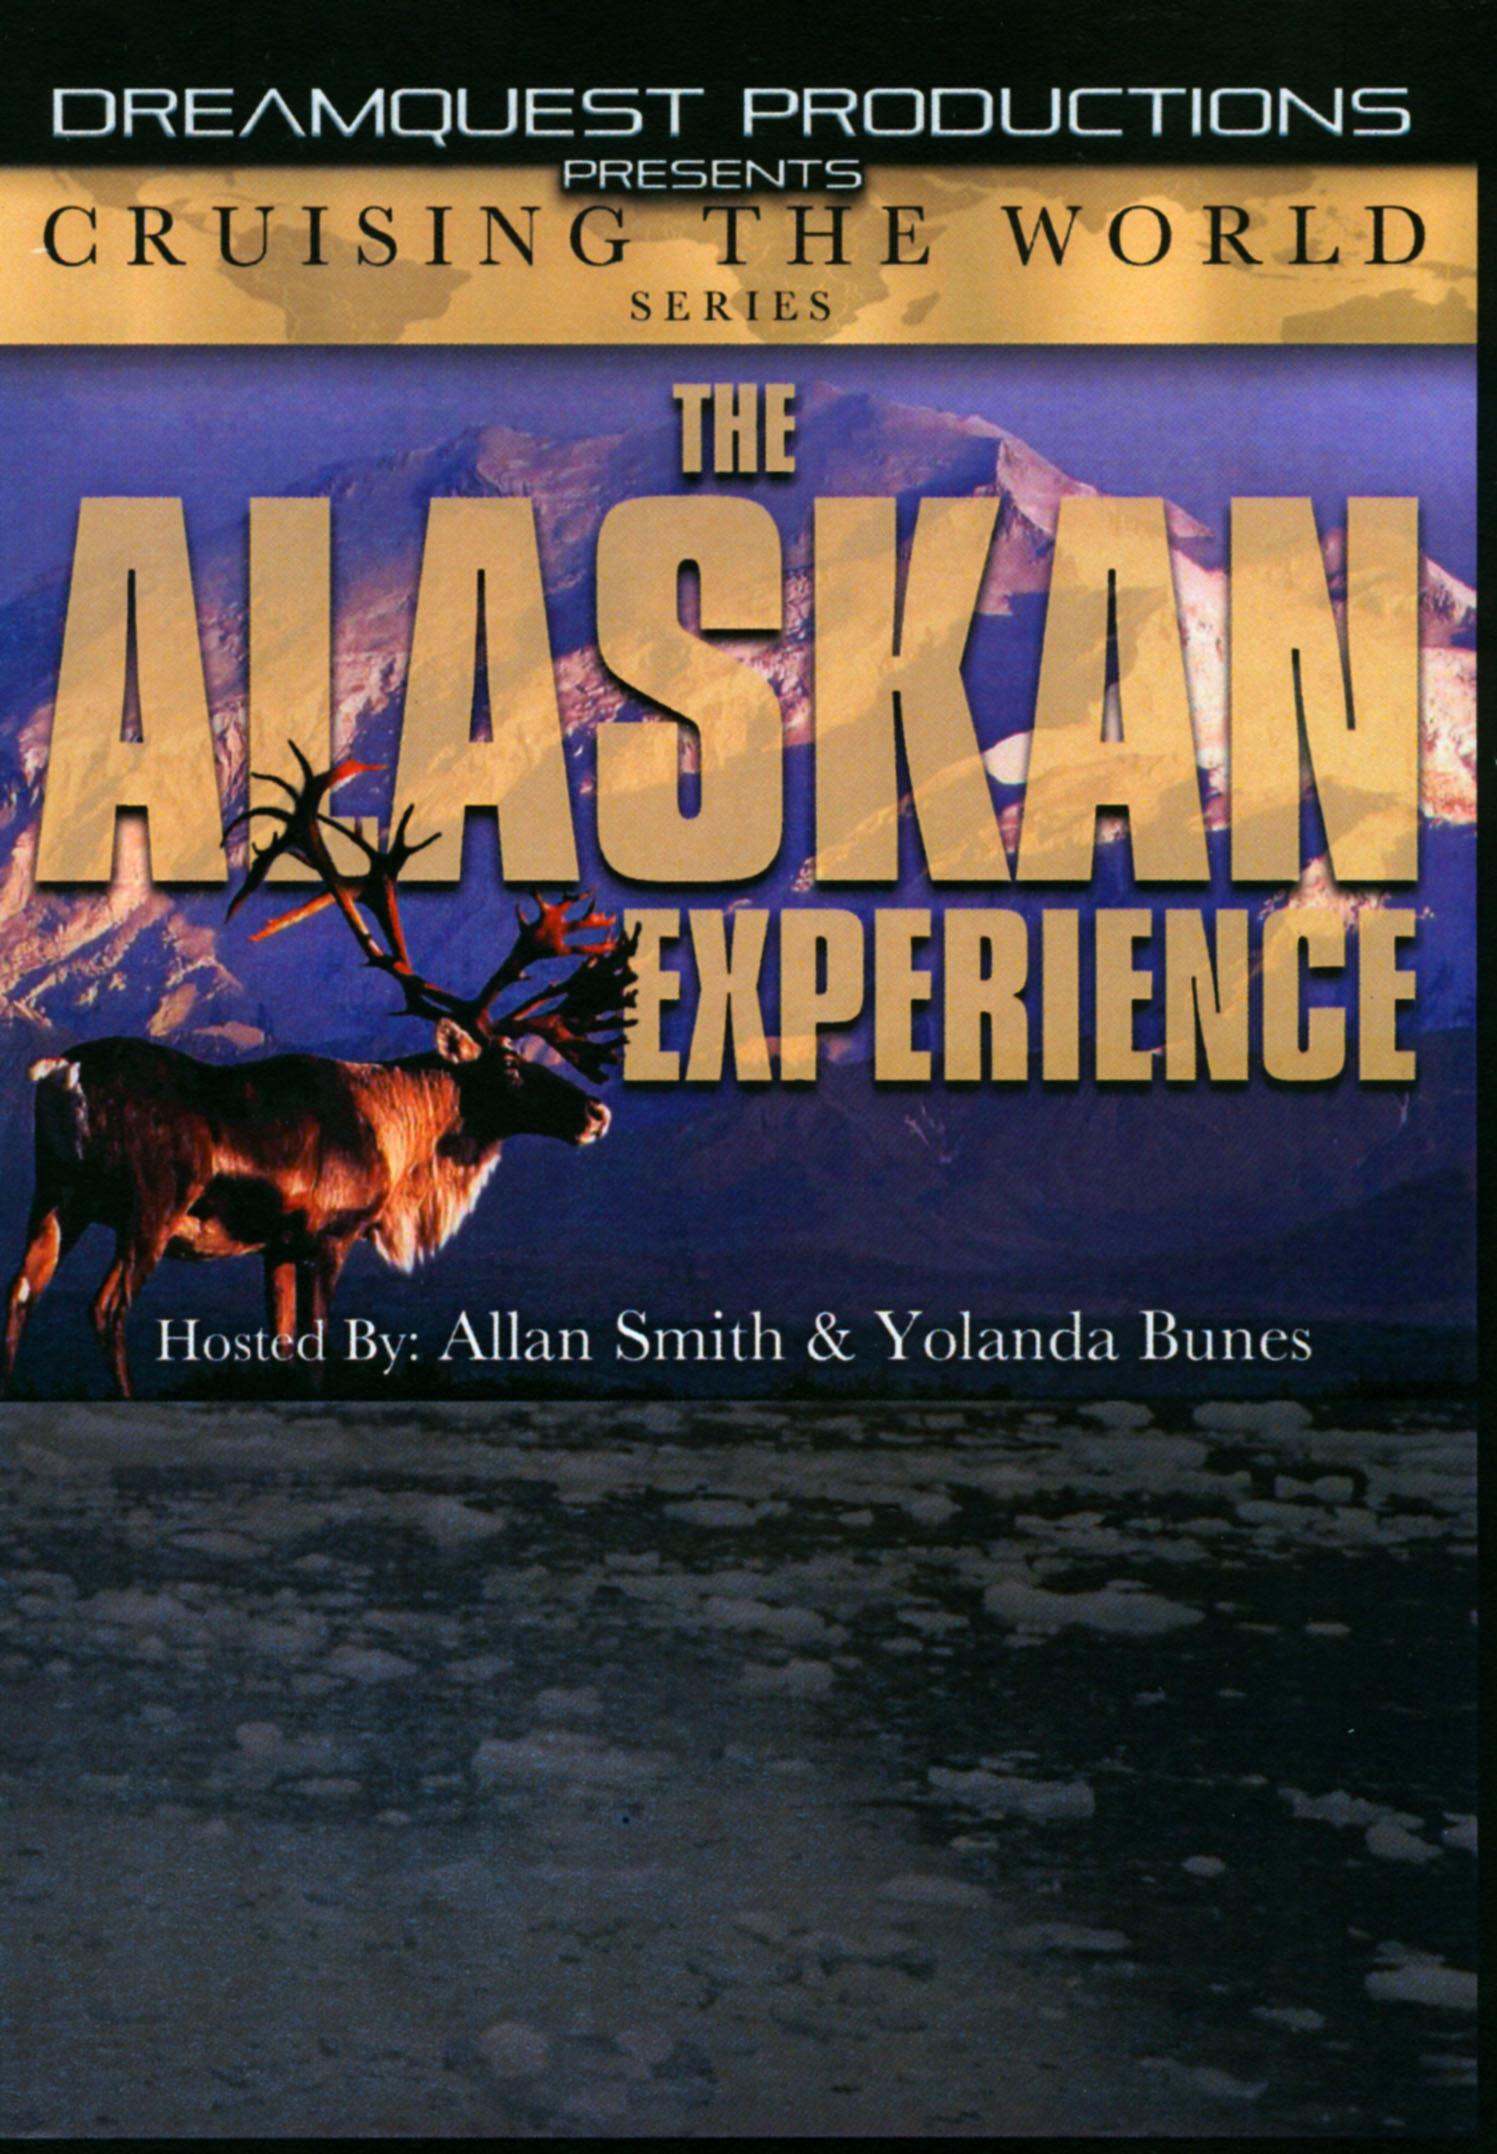 Cruising The World: The Alaskan Experience